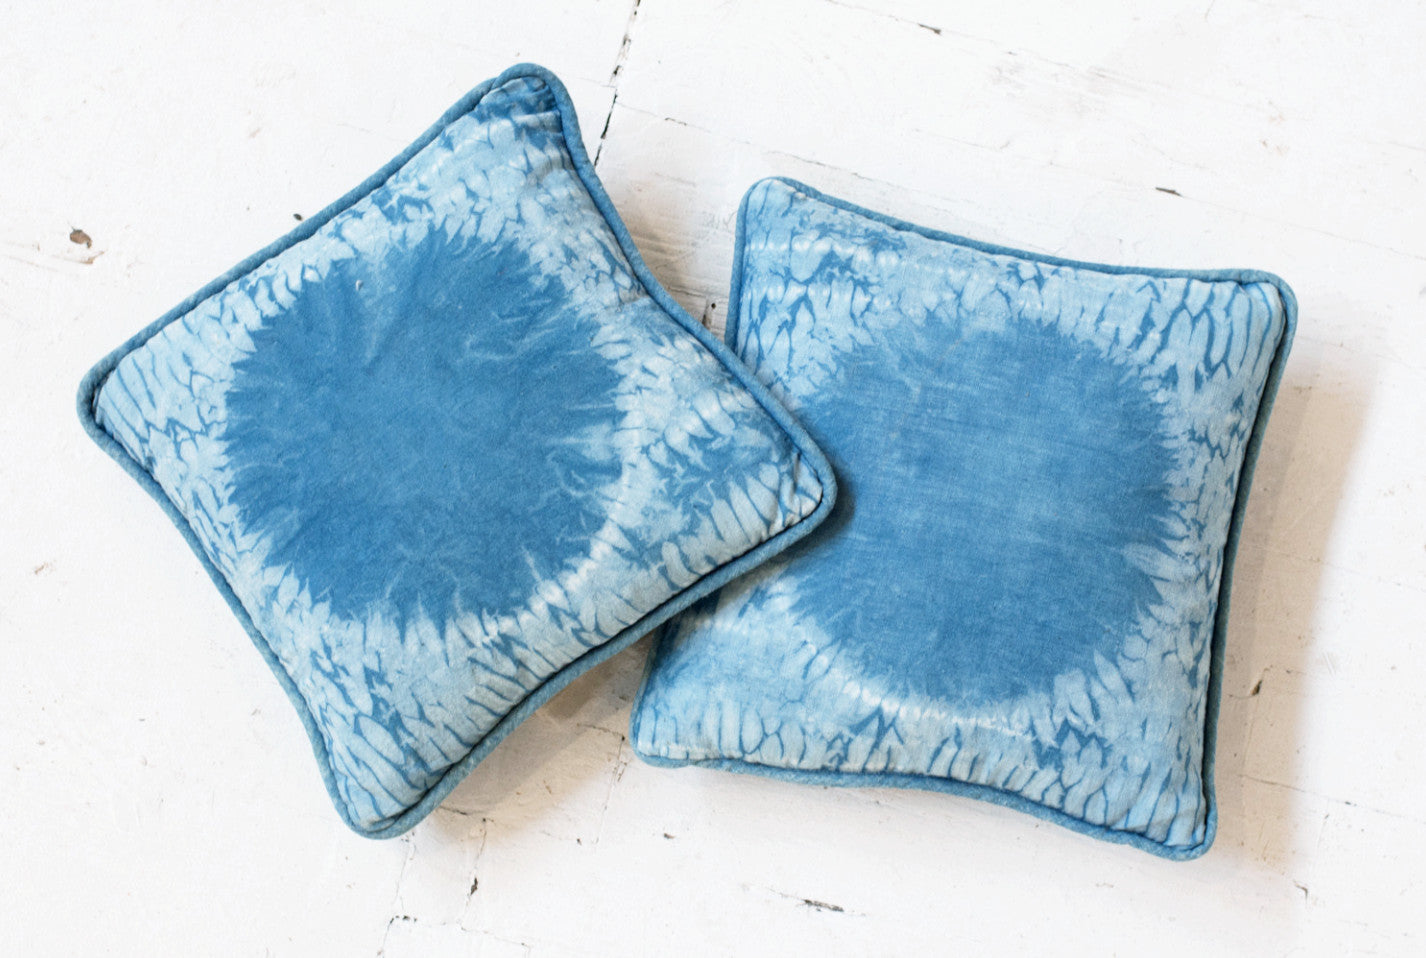 Handmade Natural Indigo Dyed Shibori Pillows